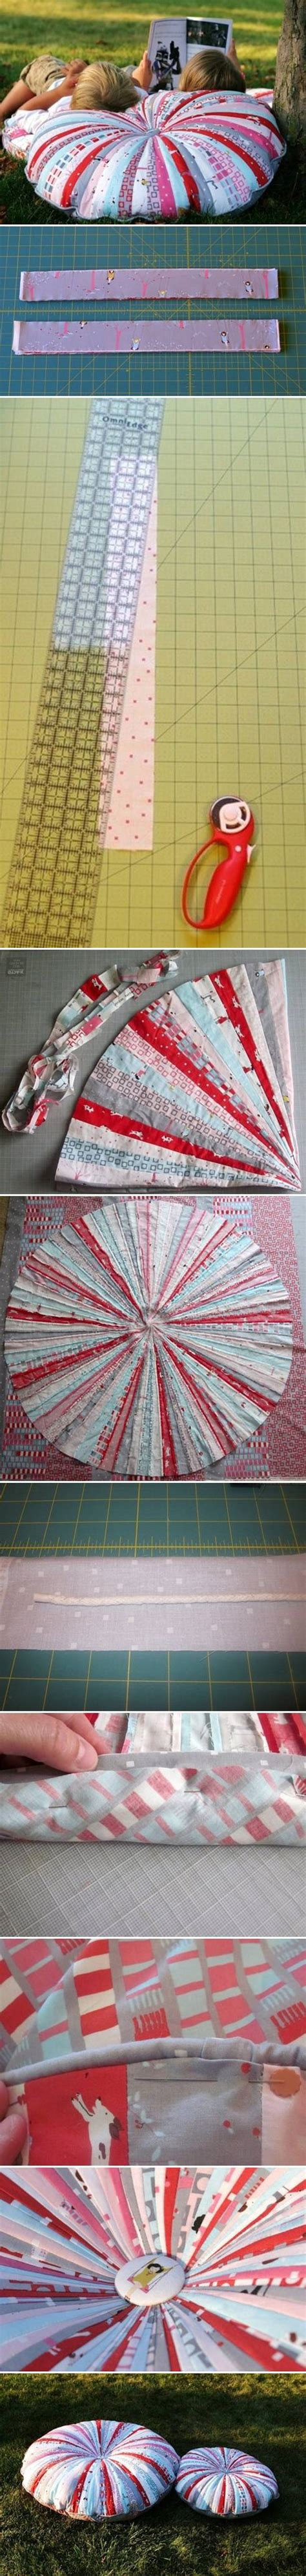 How To Do Patchwork Step By Step - how to make patchwork pillow step by step diy